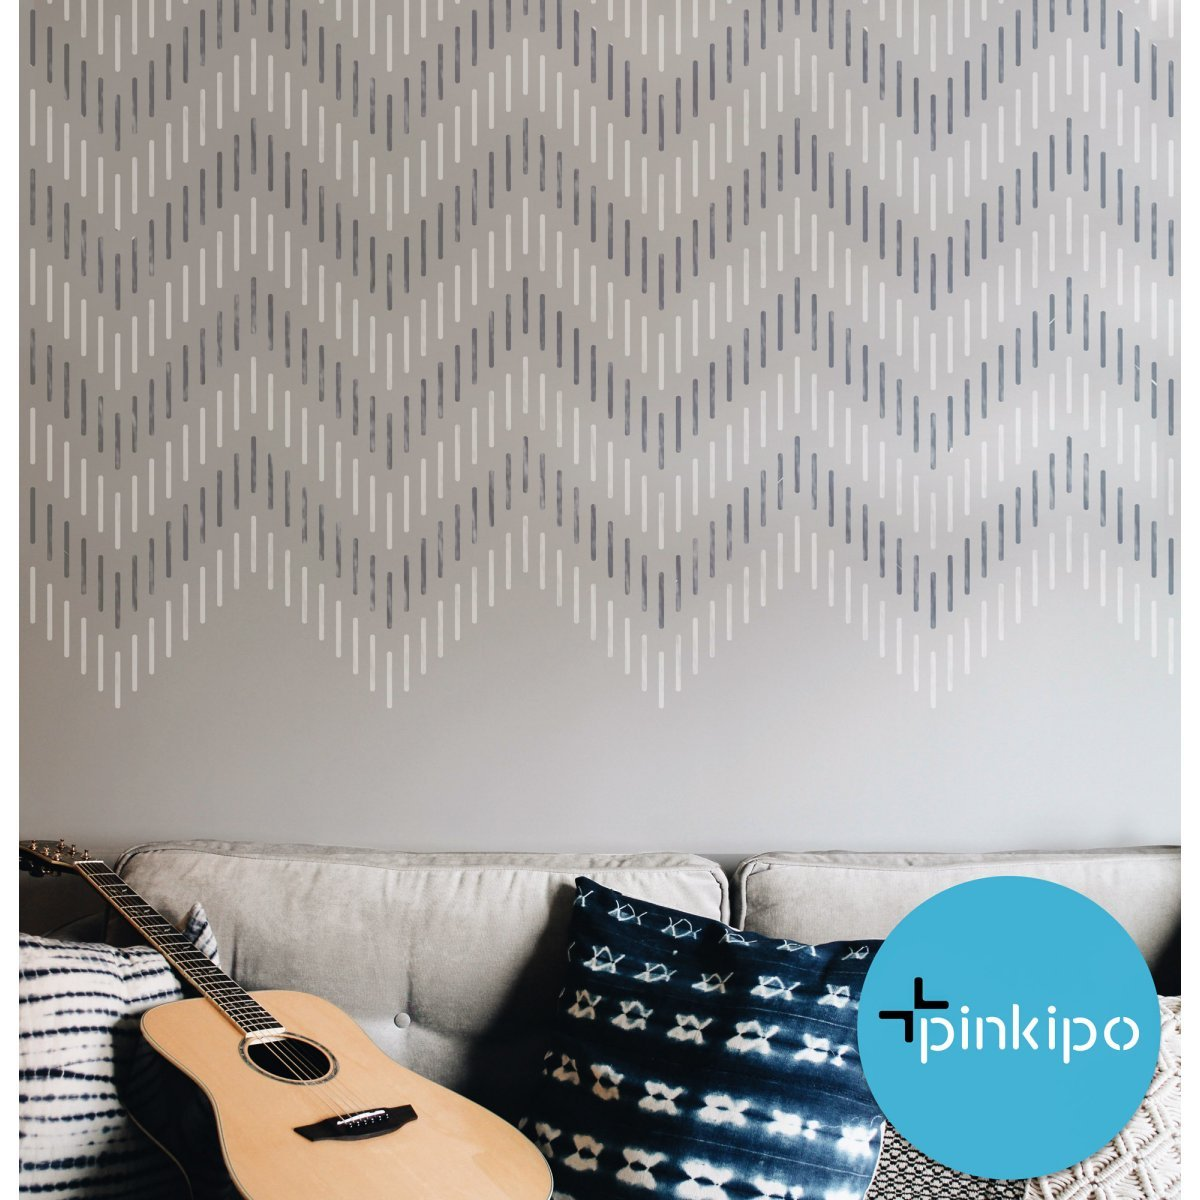 CHEVRON WALL RUG / Reusable Allover Large Wall Stencils for Painting